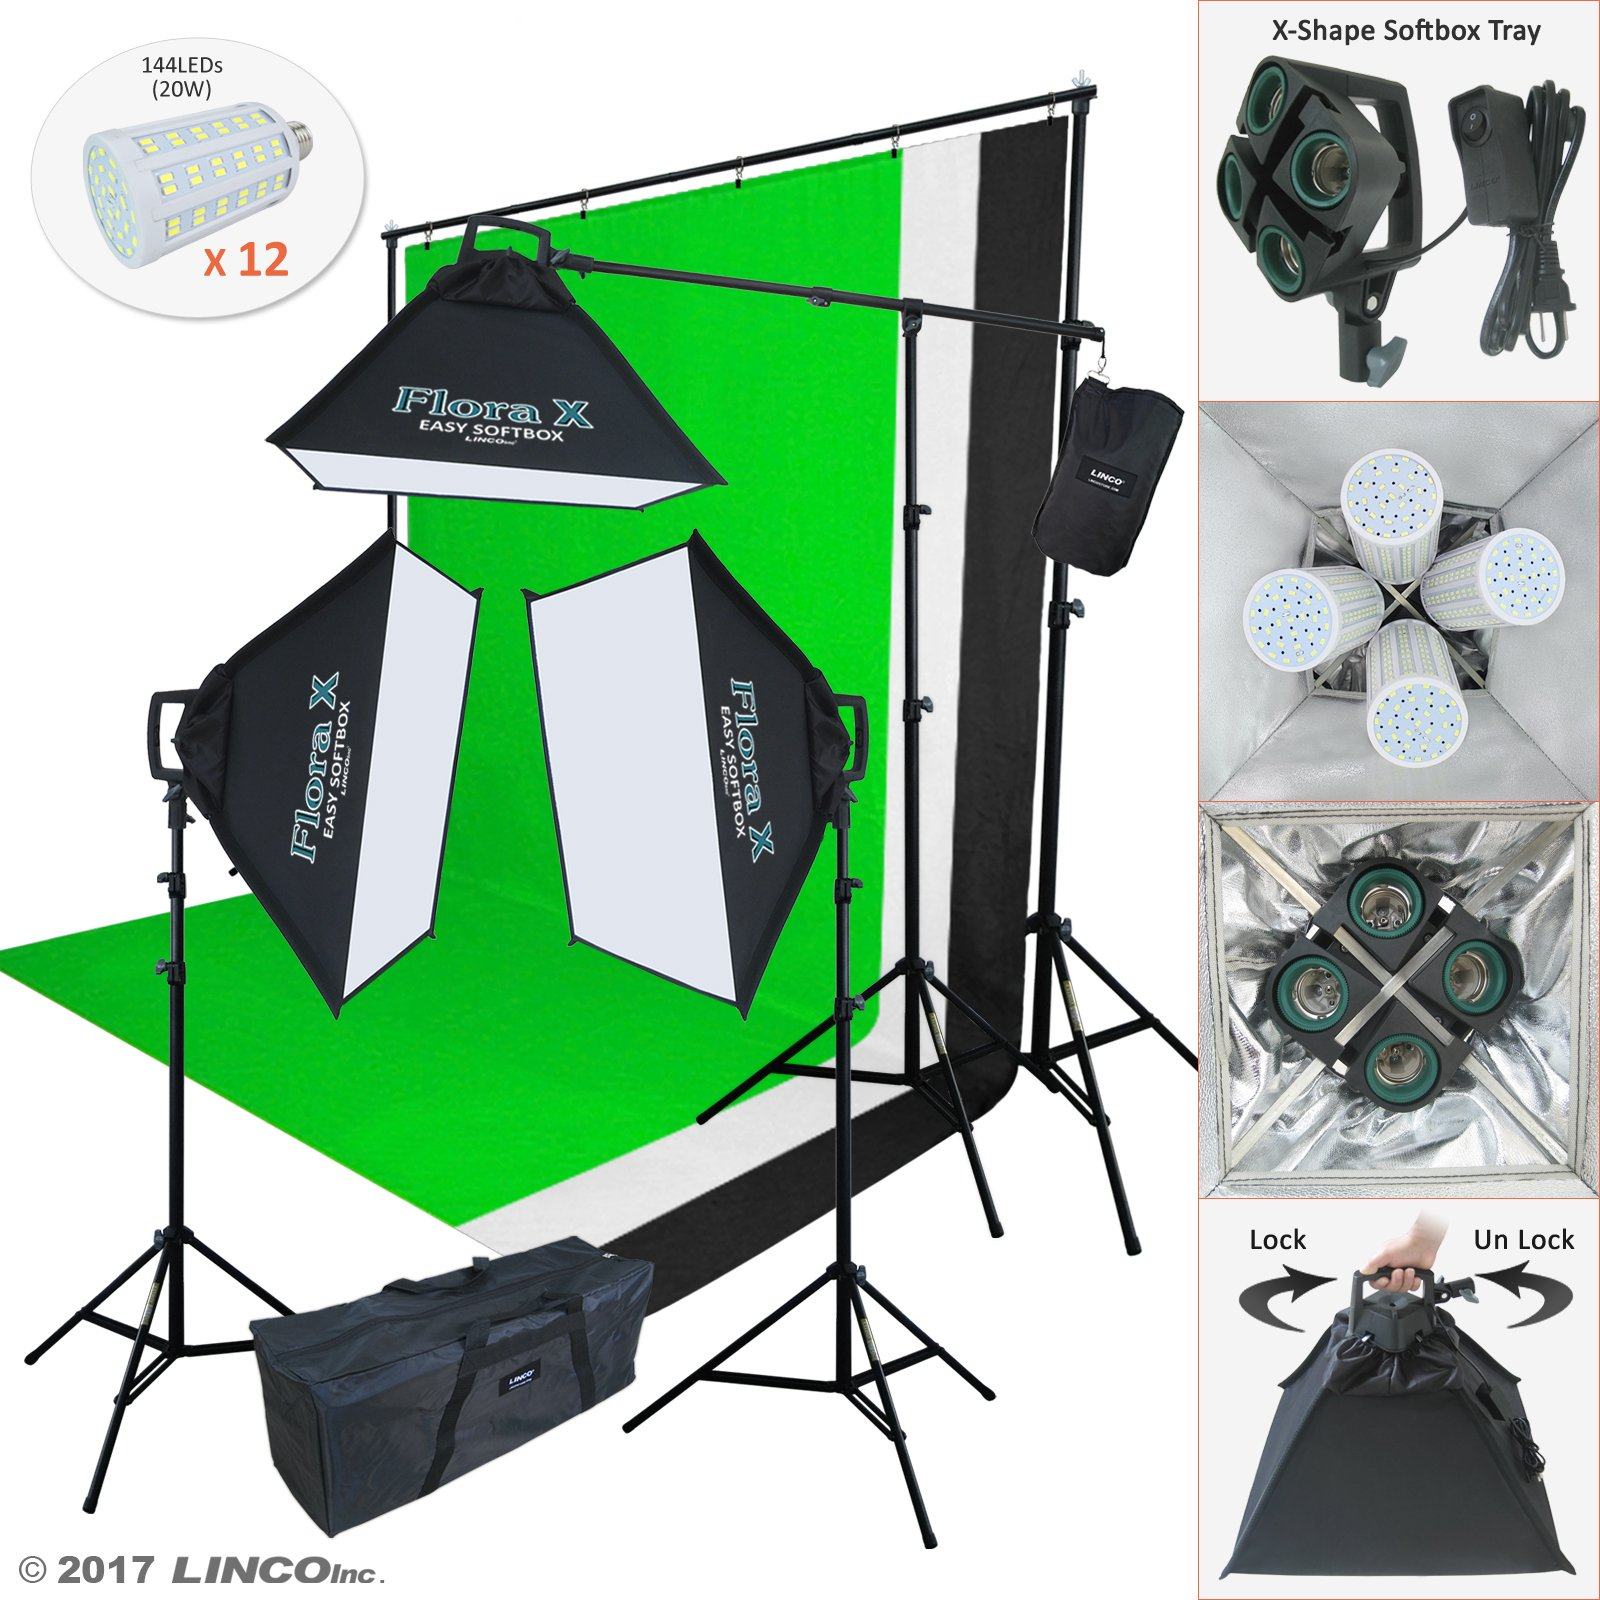 Linco Lincostore Photo Studio Lighting Kit With 3 Color Muslin Backdrop Stand Photography Flora X Fluorescent 4-Socket Light Bank and Auto Pop-Up Softbox -- Only takes 3 seconds to Set-up AM173 by Linco